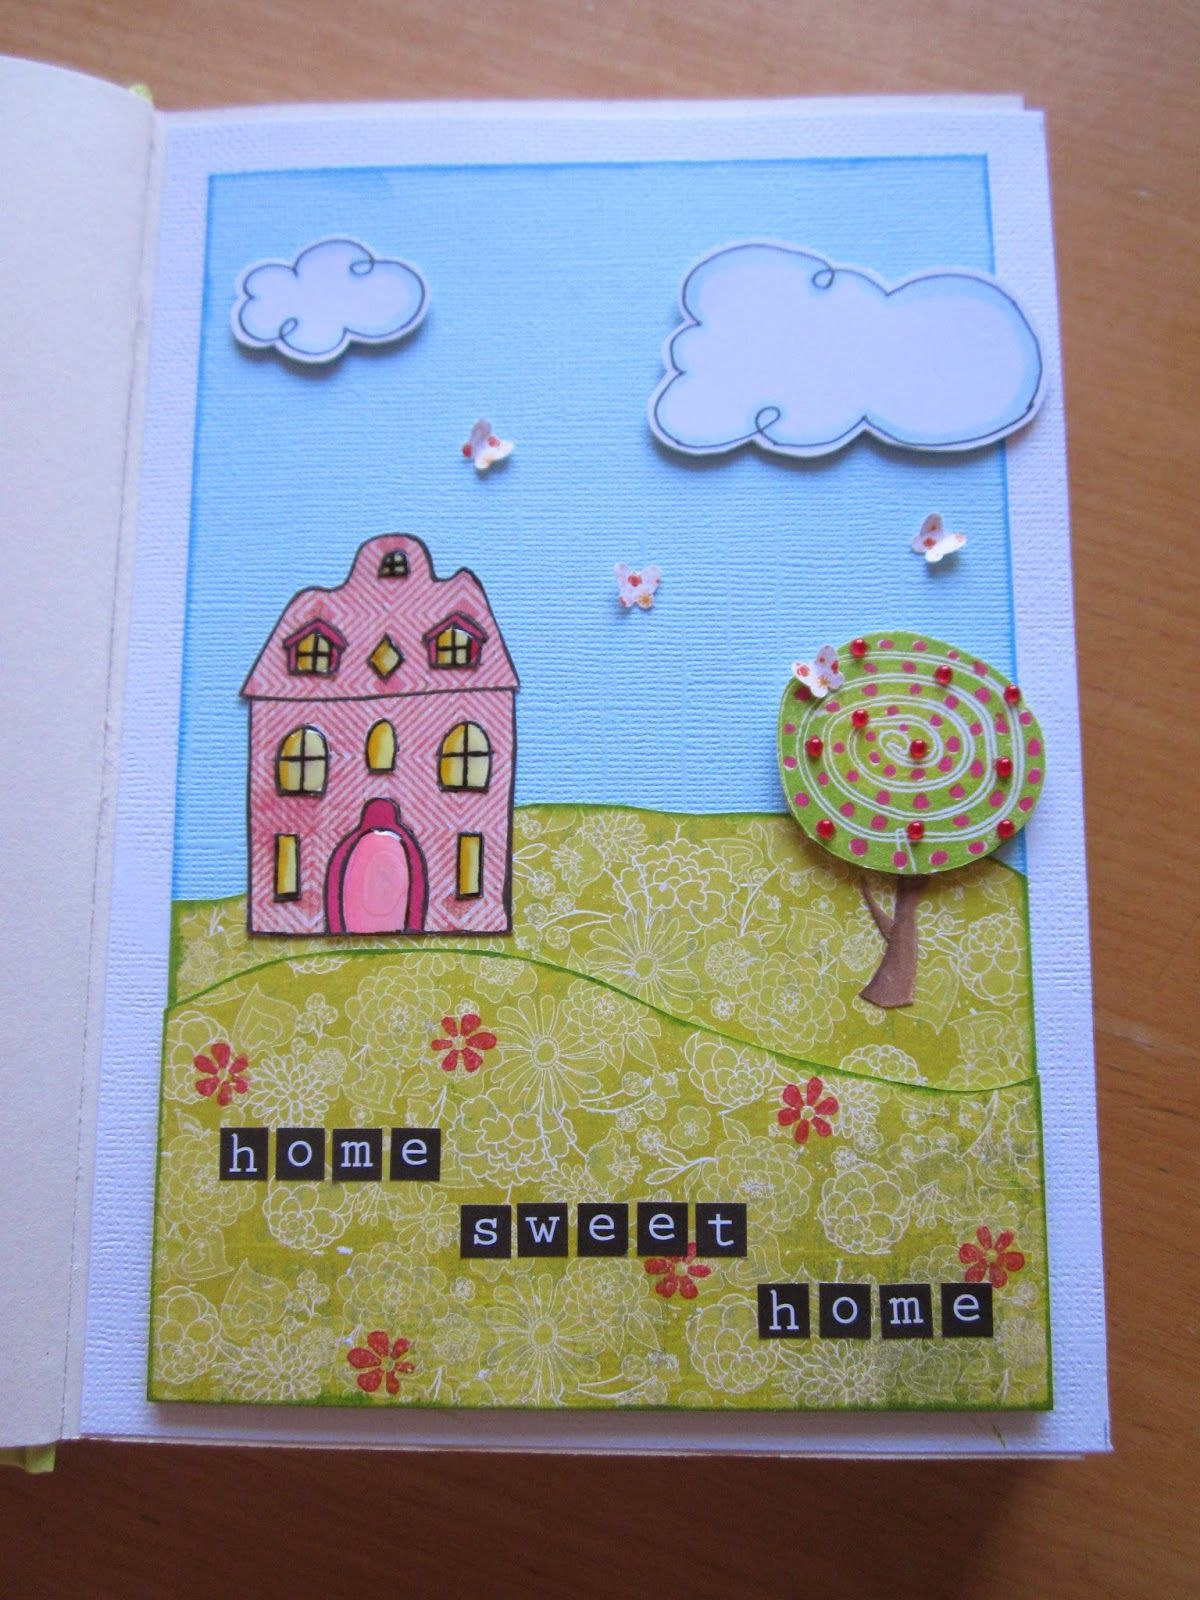 Kaatje Kip blog - 1e pagina in mijn freubelboekje - first page made in my creative-book.